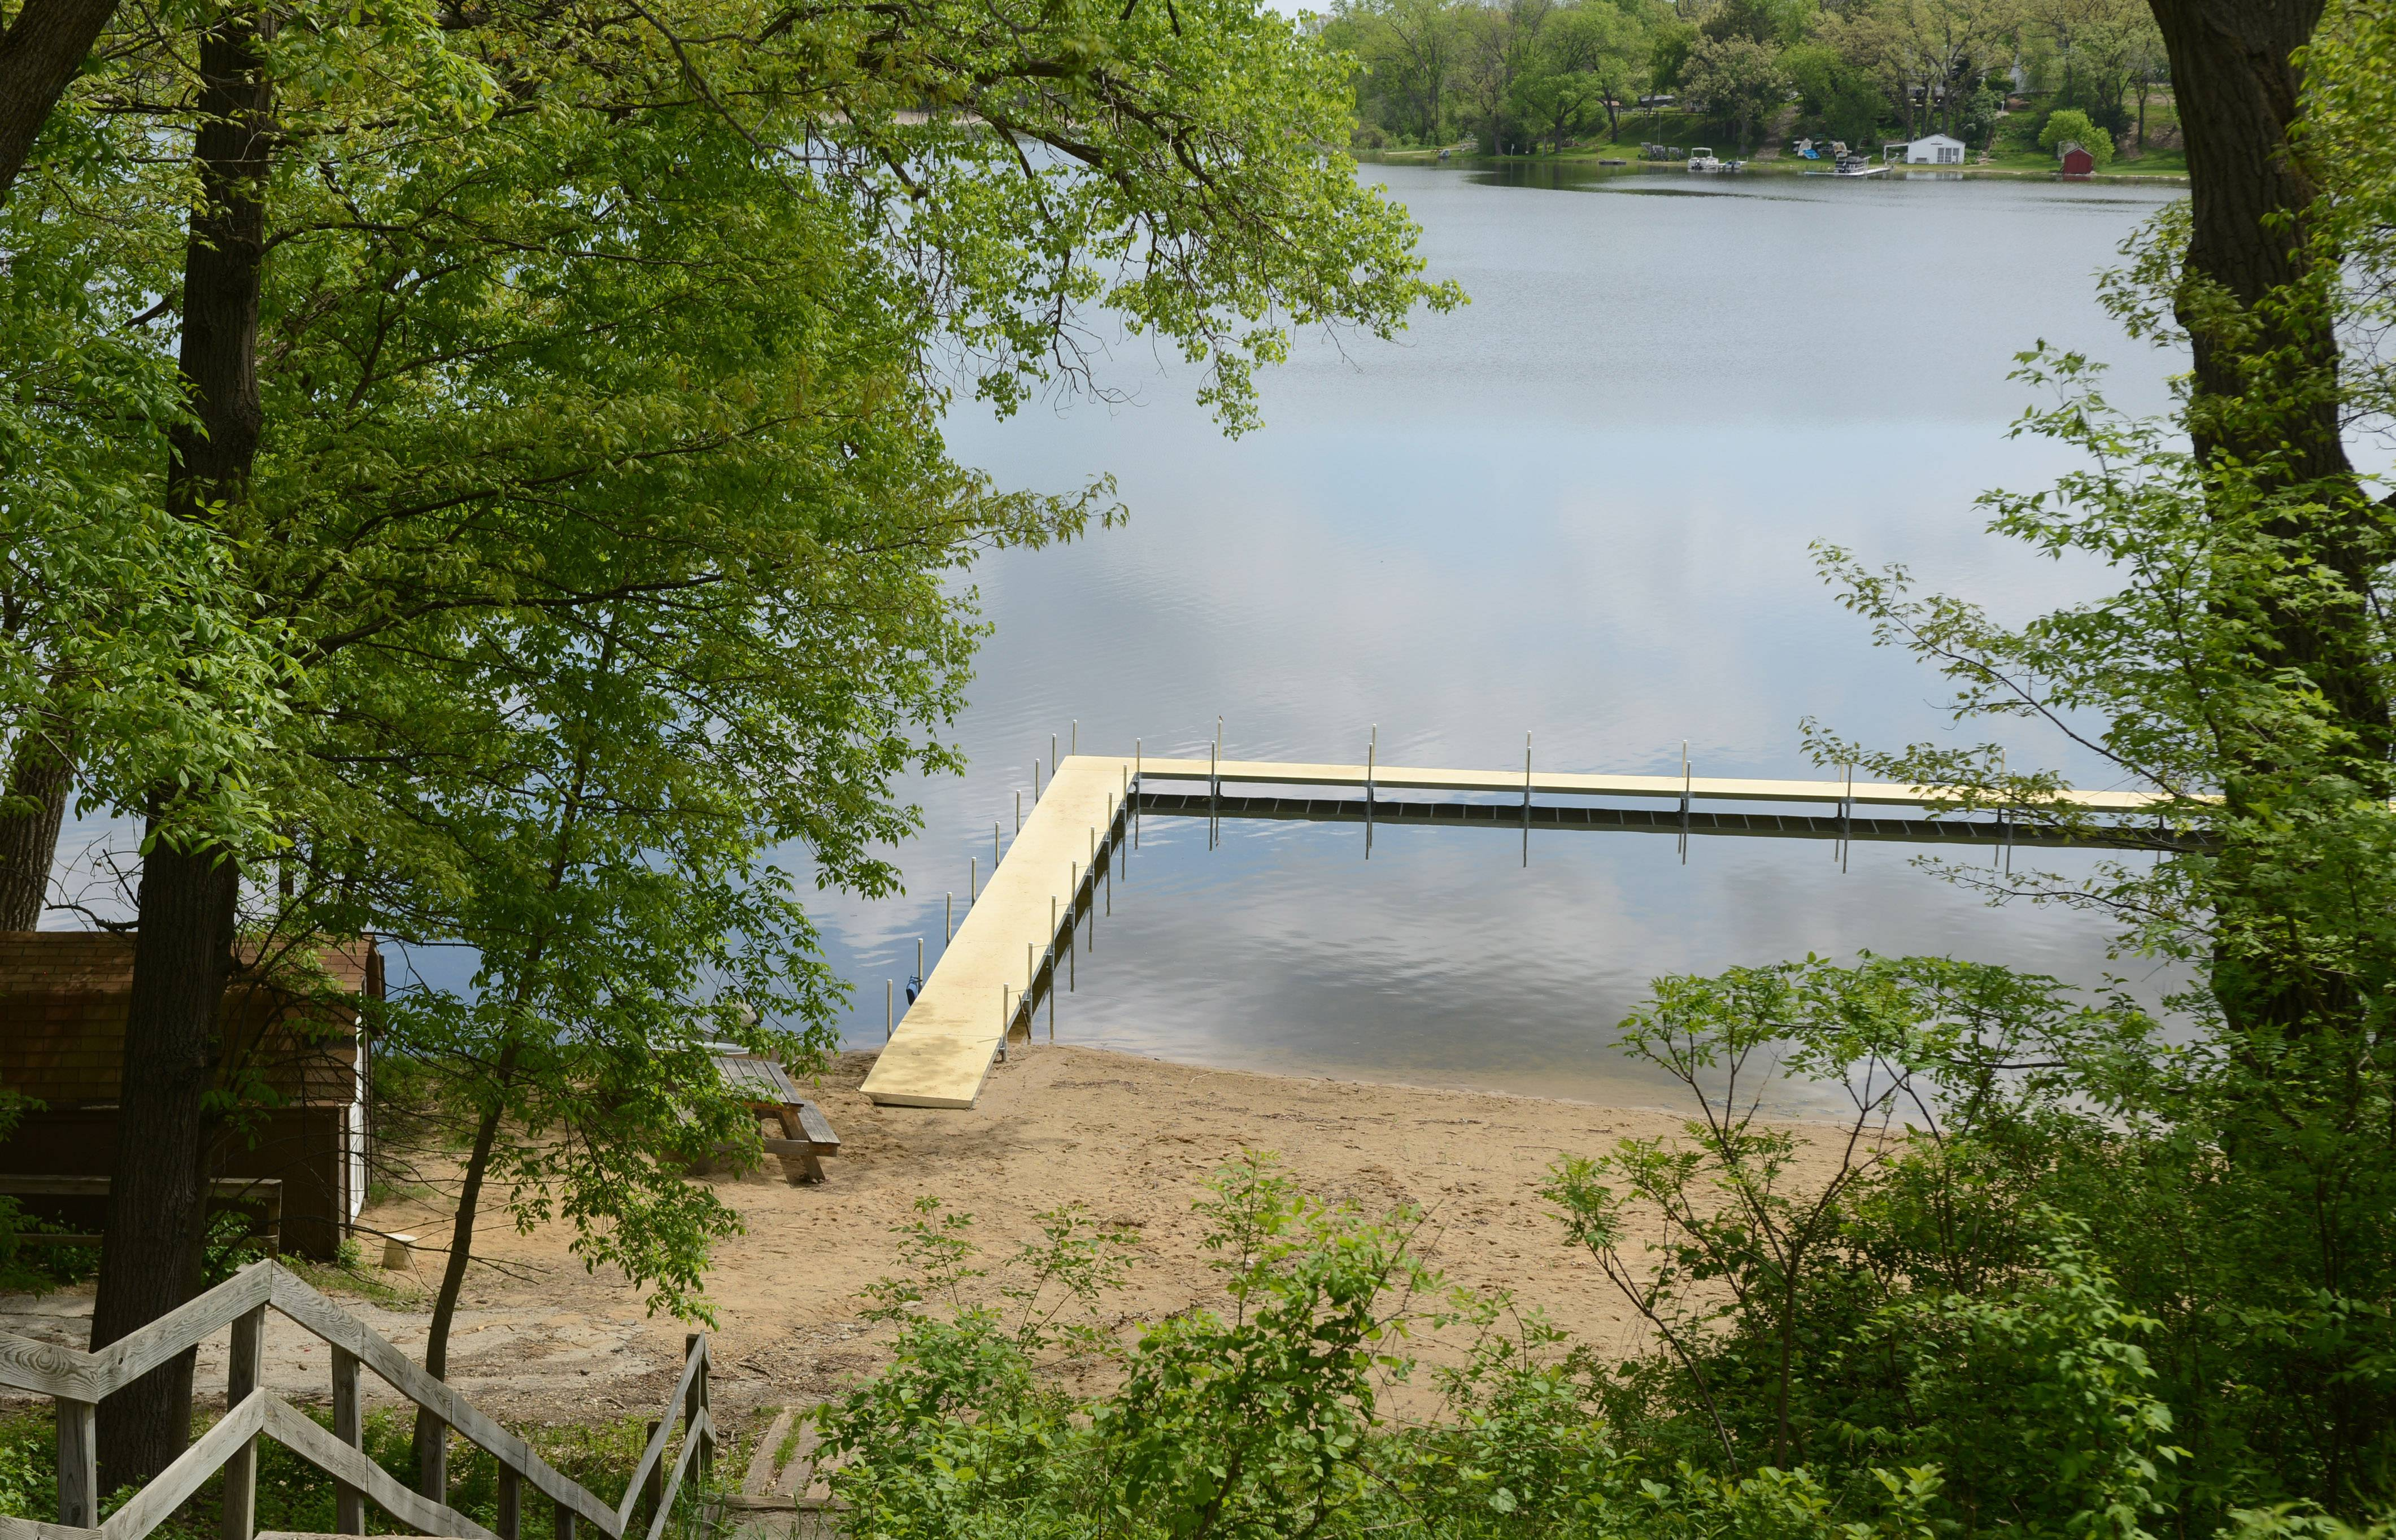 Camp Peacock in Lake Villa Township has a new dock on Crooked Lake to go with its roughly 600 feet of shoreline. The facility reopens for summer camps later this month.